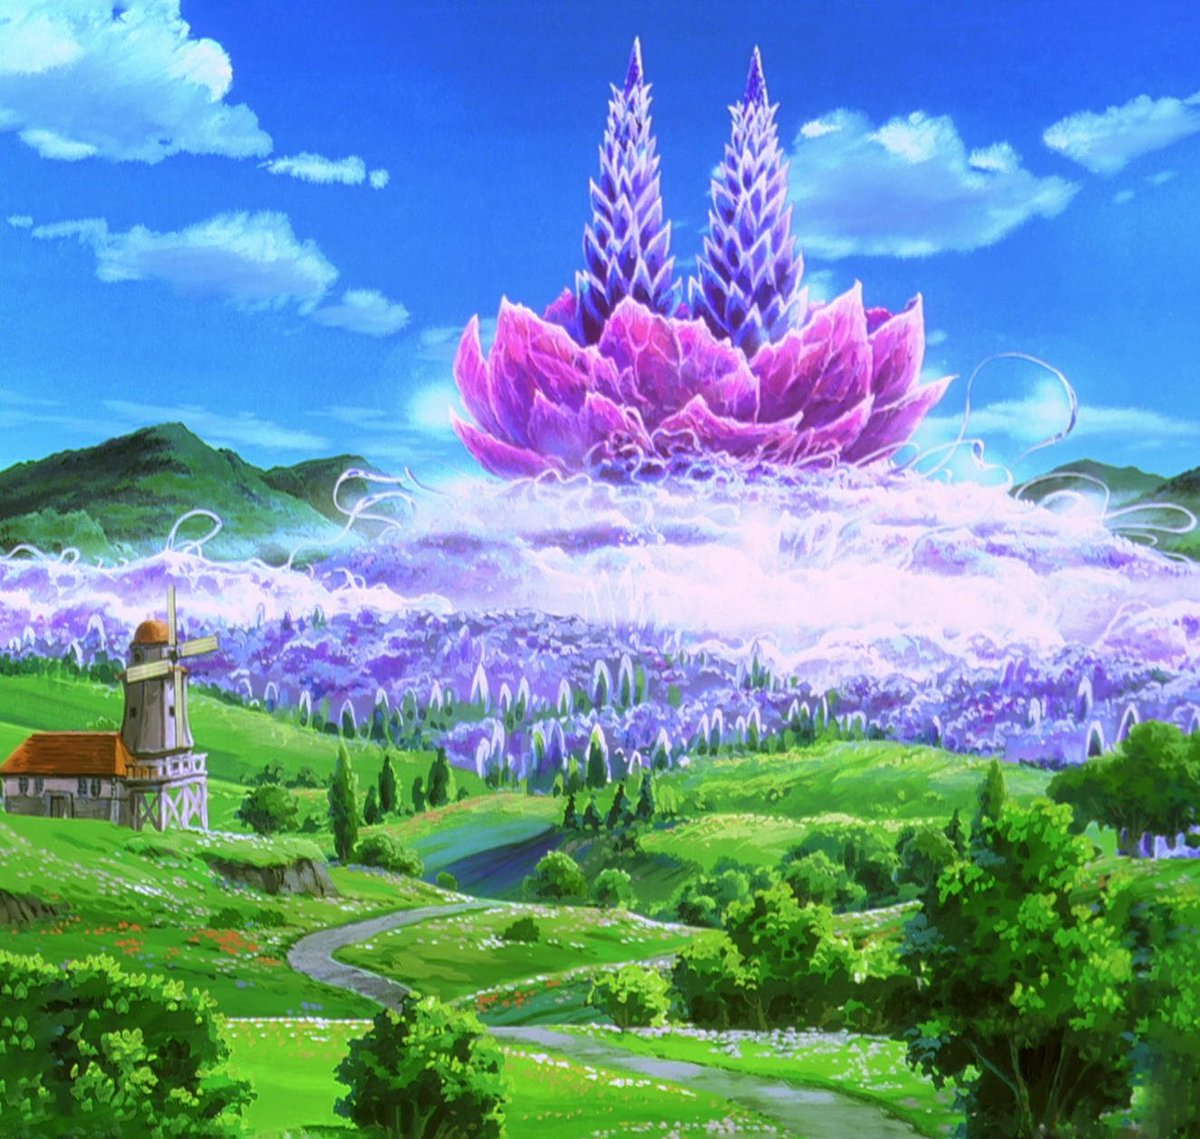 Animation Backgrounds On Twitter Pokemon 3 The Movie Spell Of